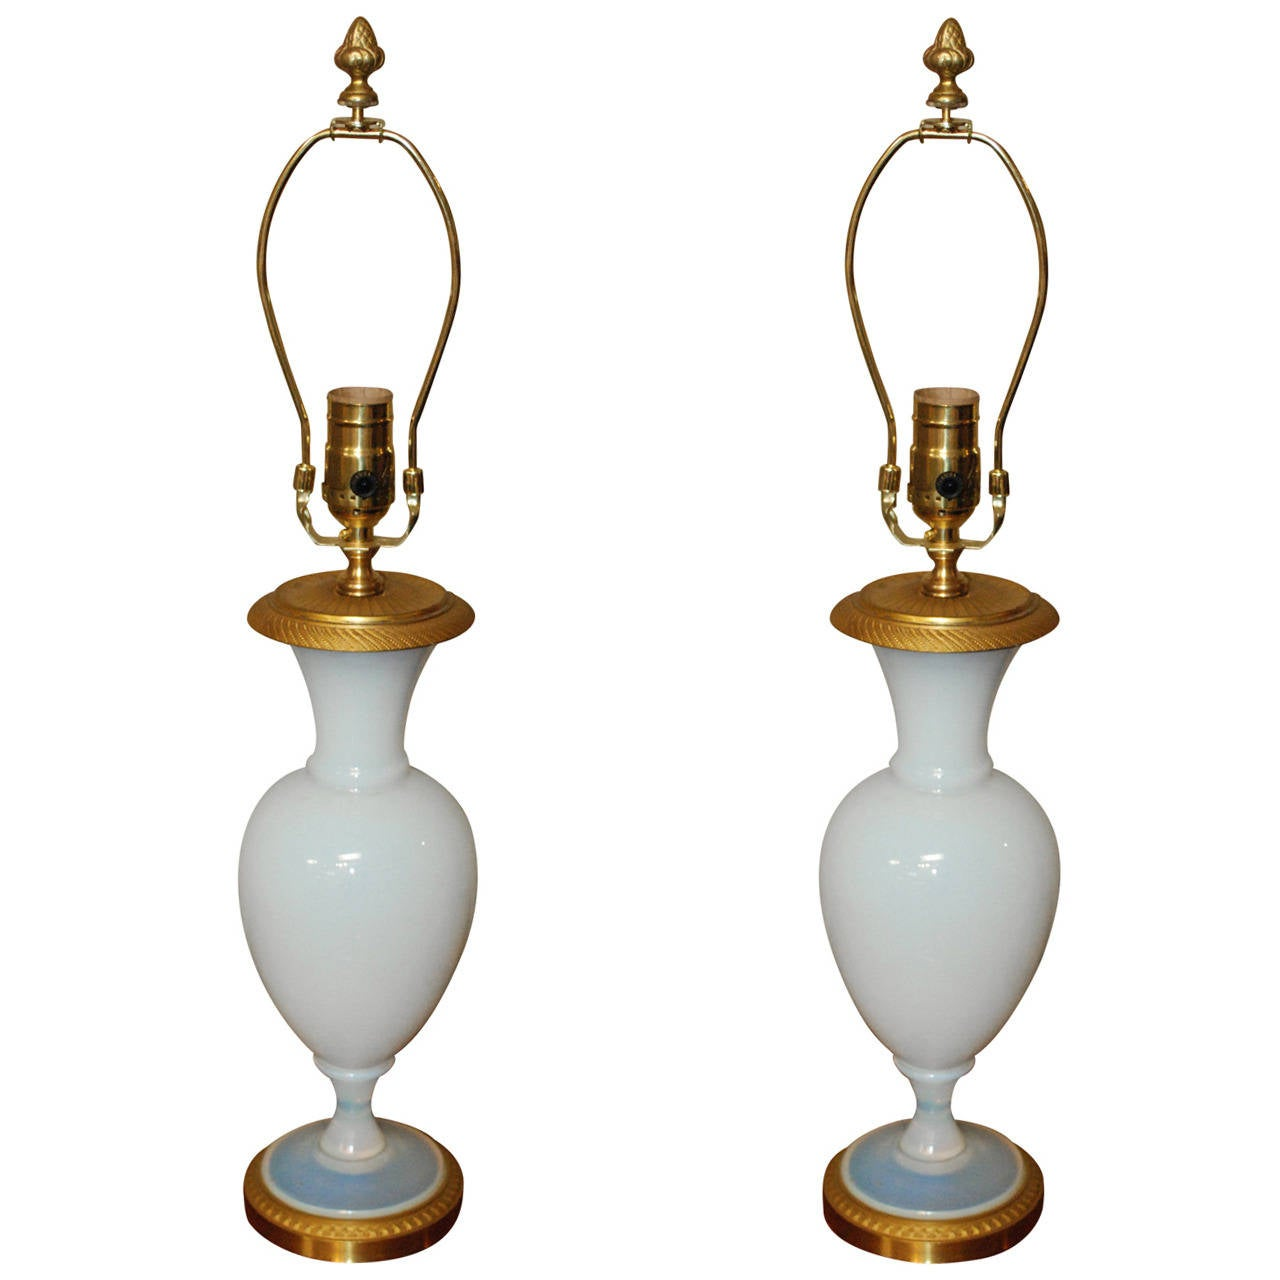 Pair of French Opaline Lamps